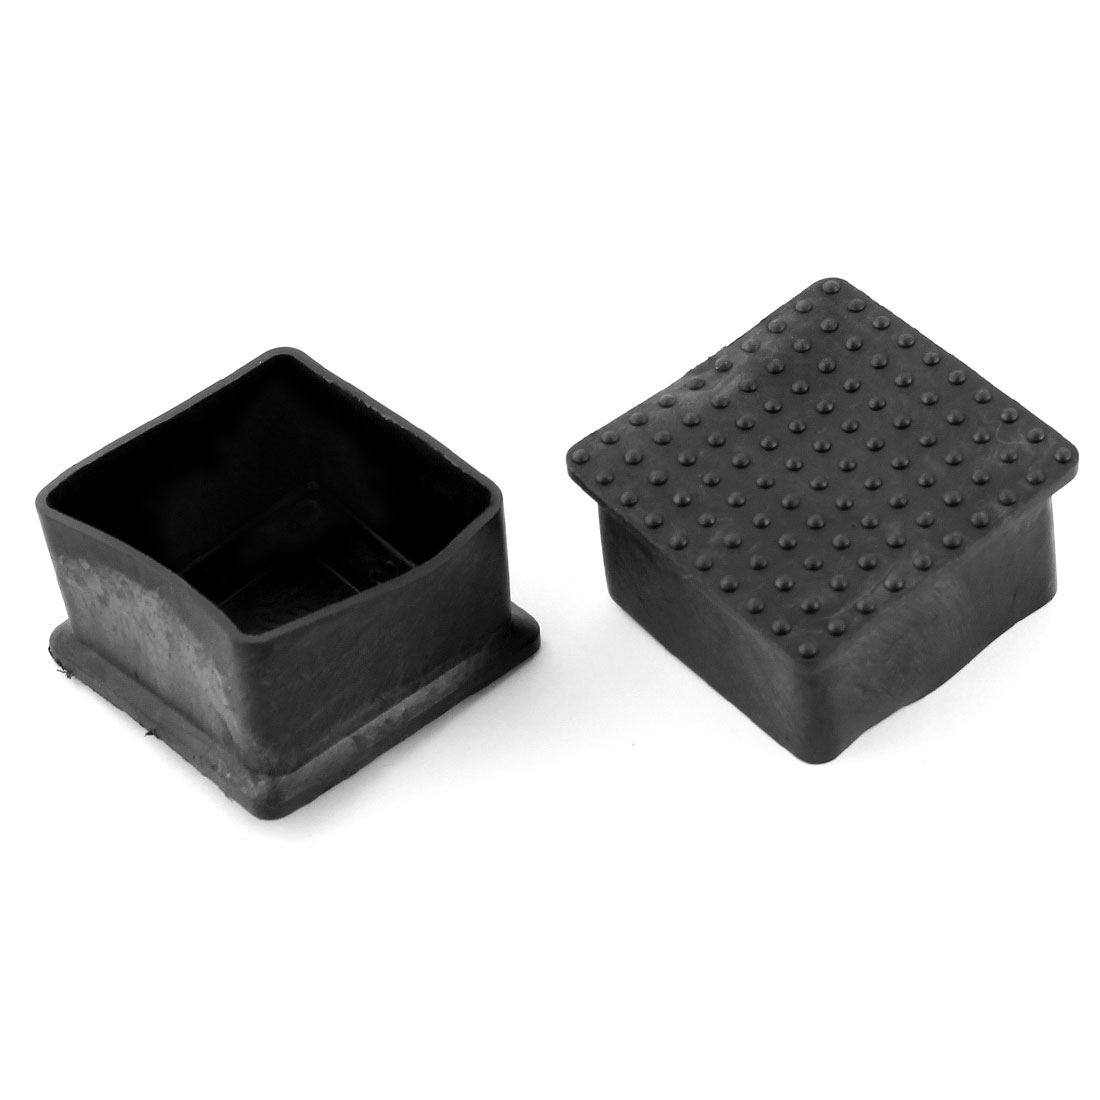 Furniture Chair Table Square Leg Protector Rubber Foot 50mmx50mm 2Pcs